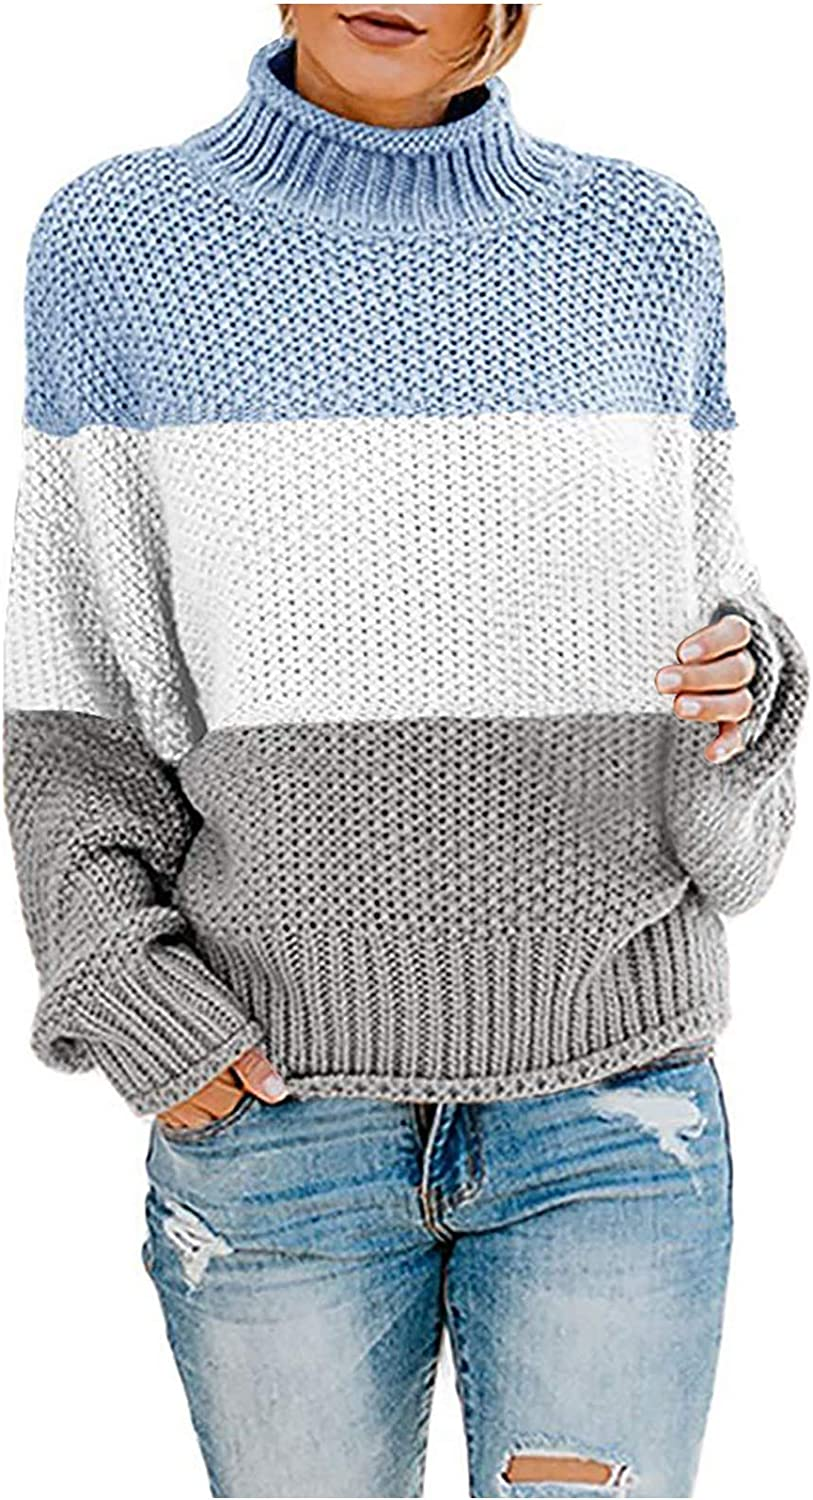 Women's Crew Neck Ranking TOP6 Memphis Mall Long Sleeve Color Casual Sweater Block Pu Knit